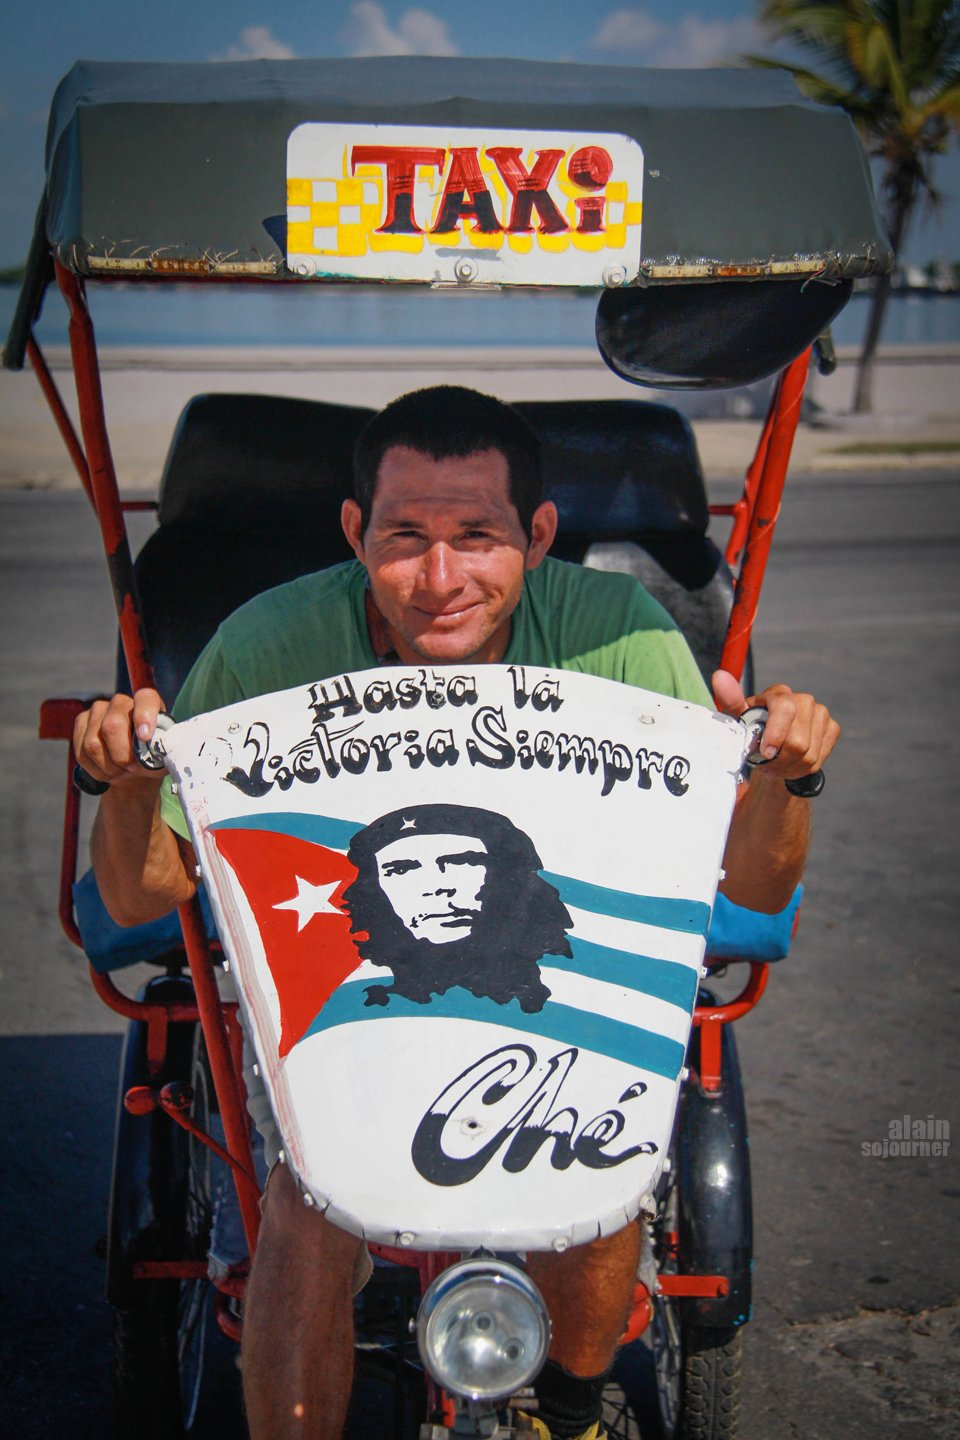 Things to do in Cuba: Try taking a taxi like this.